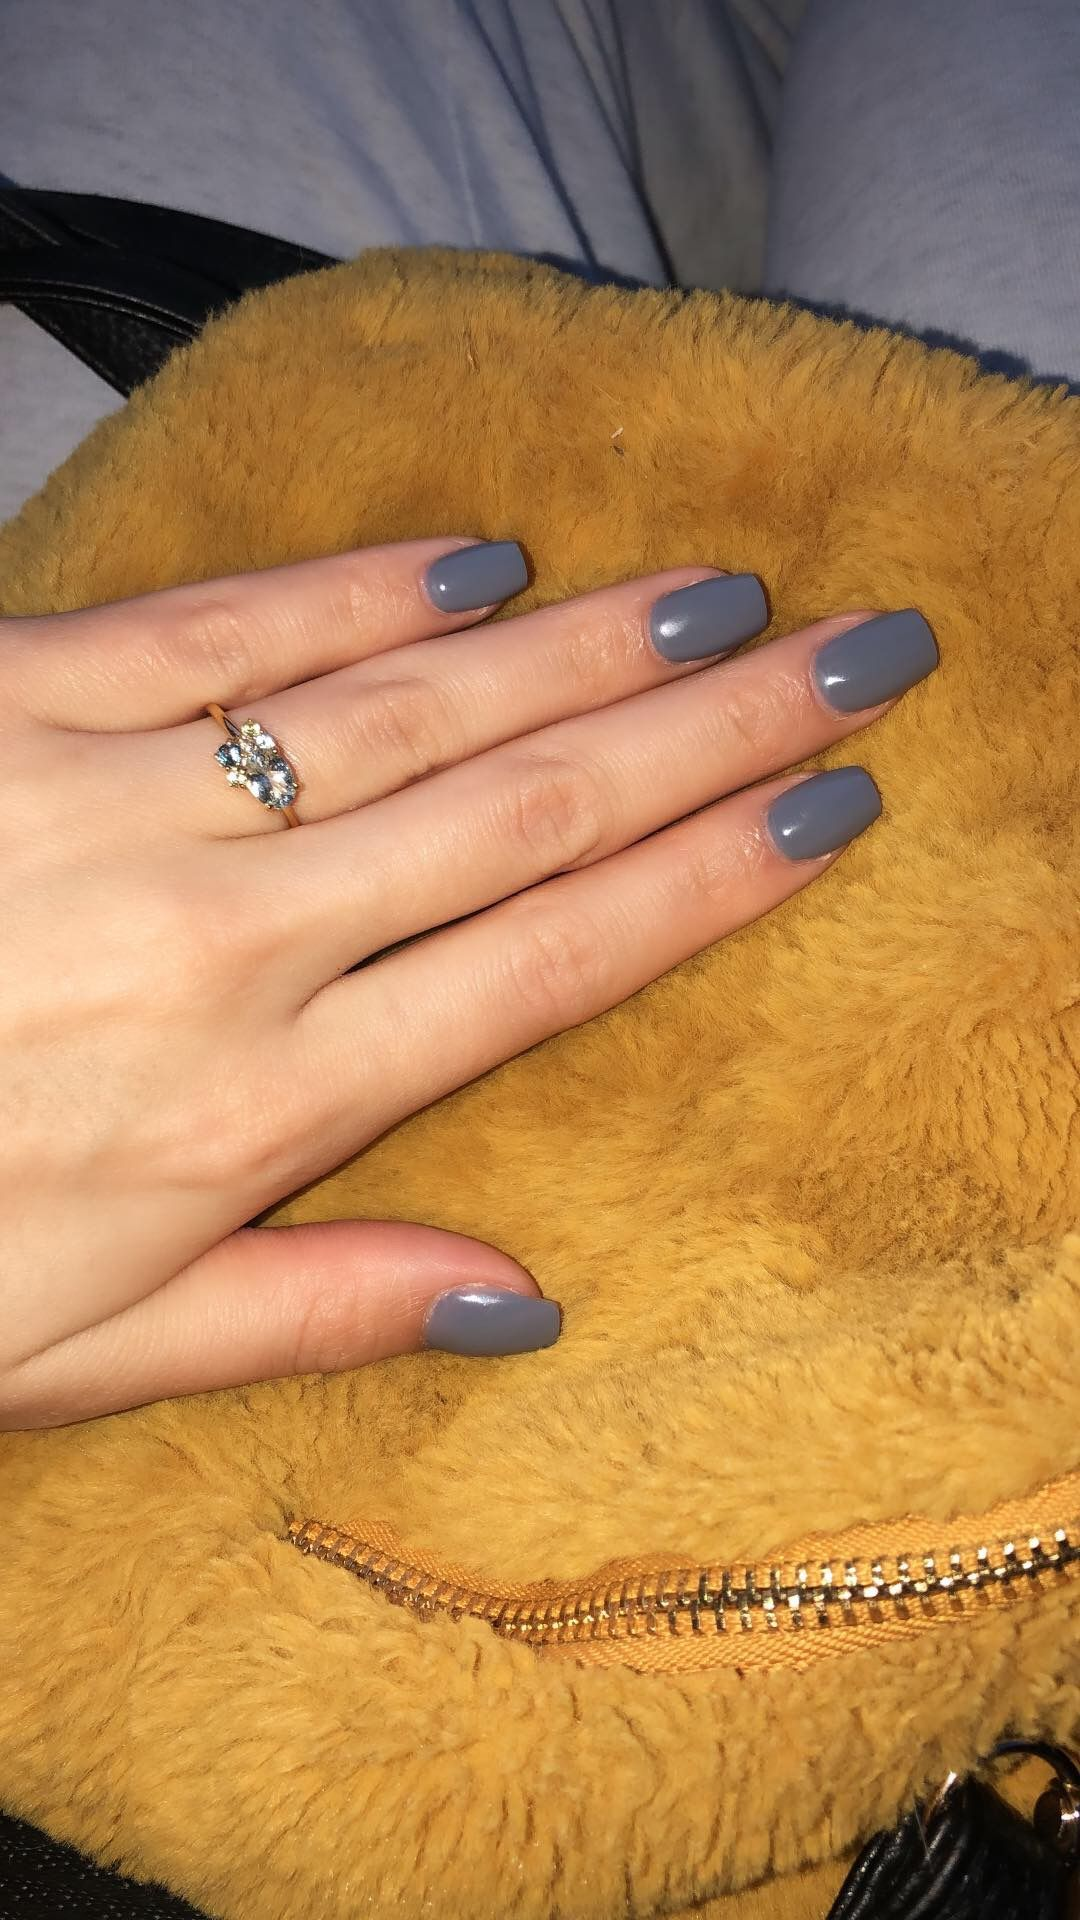 Gray Nails Nail Colors Short Nails Classy Nails Short Nail Manicure Grey Acrylic Nails